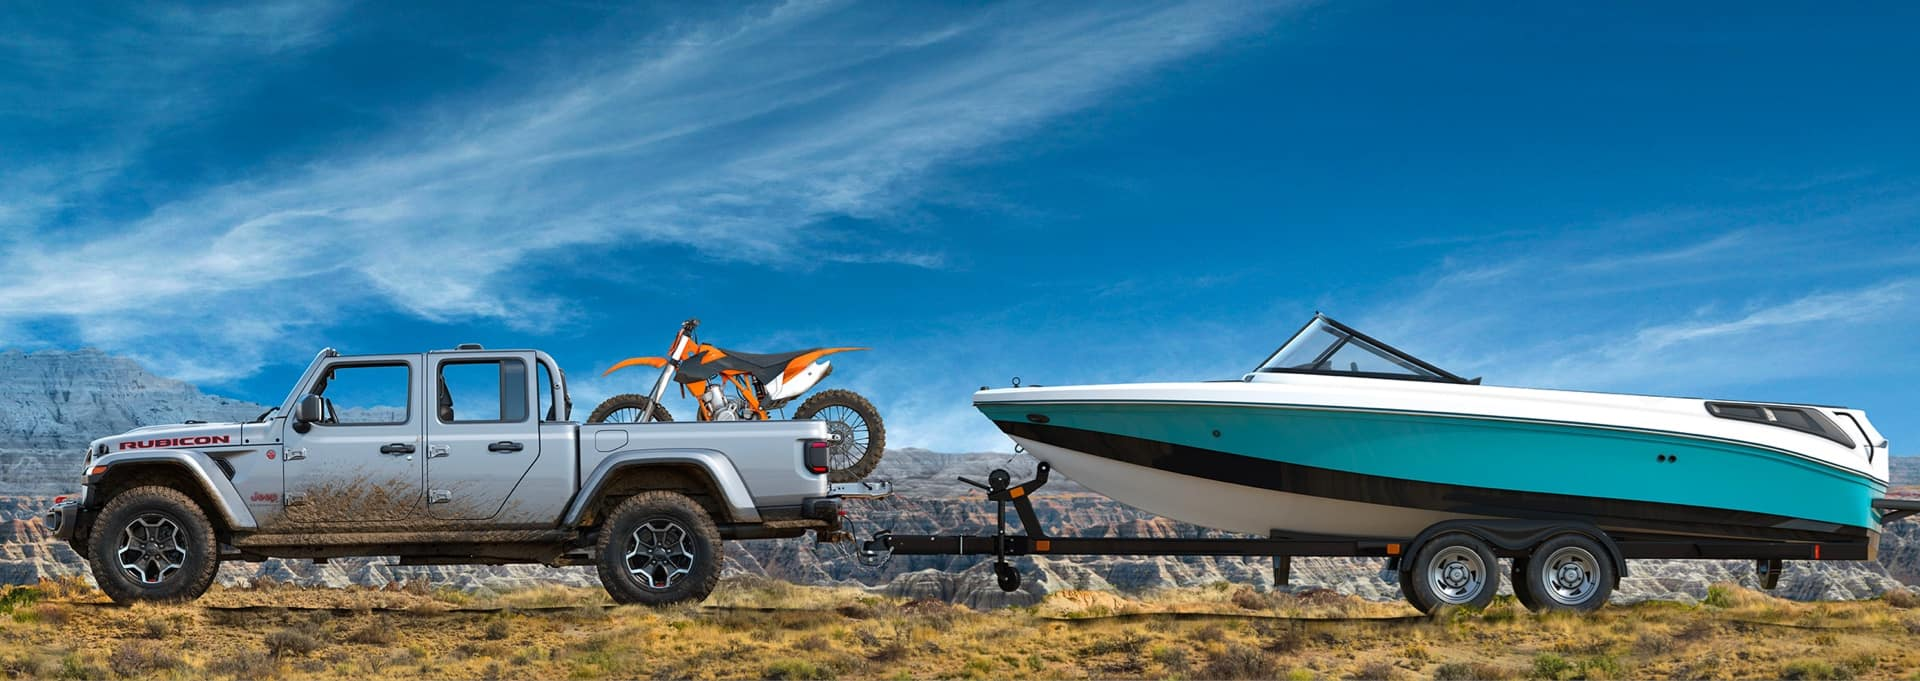 Jeep Pickup, with dirtbike in bed, pulling a boat. while in Desert / Mountainous Terrain